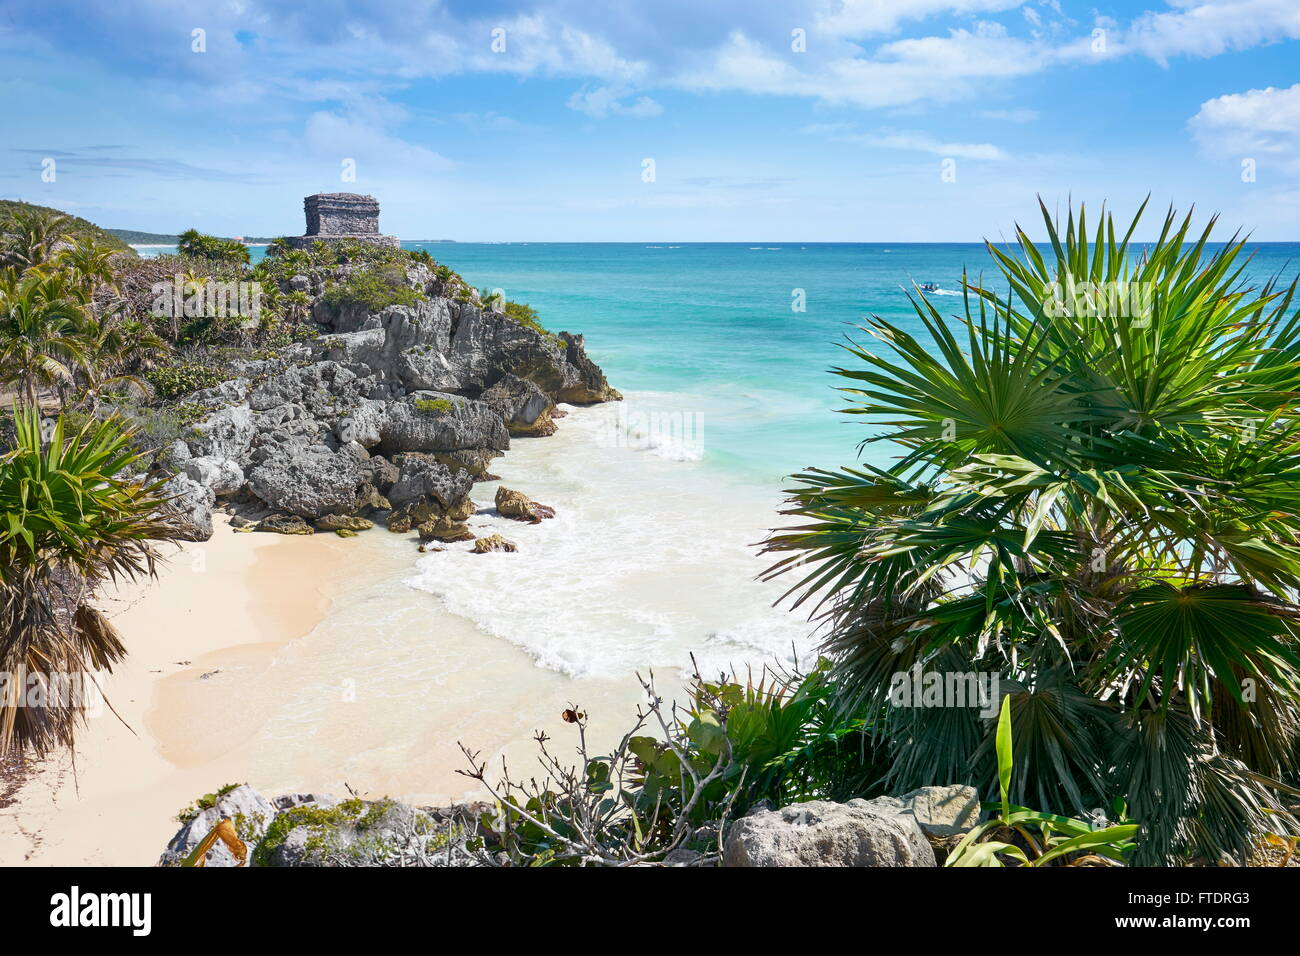 Ancient Maya Ruins, Caribbean Beach of Tulum, Mexico's Riviera, Mexico - Stock Image